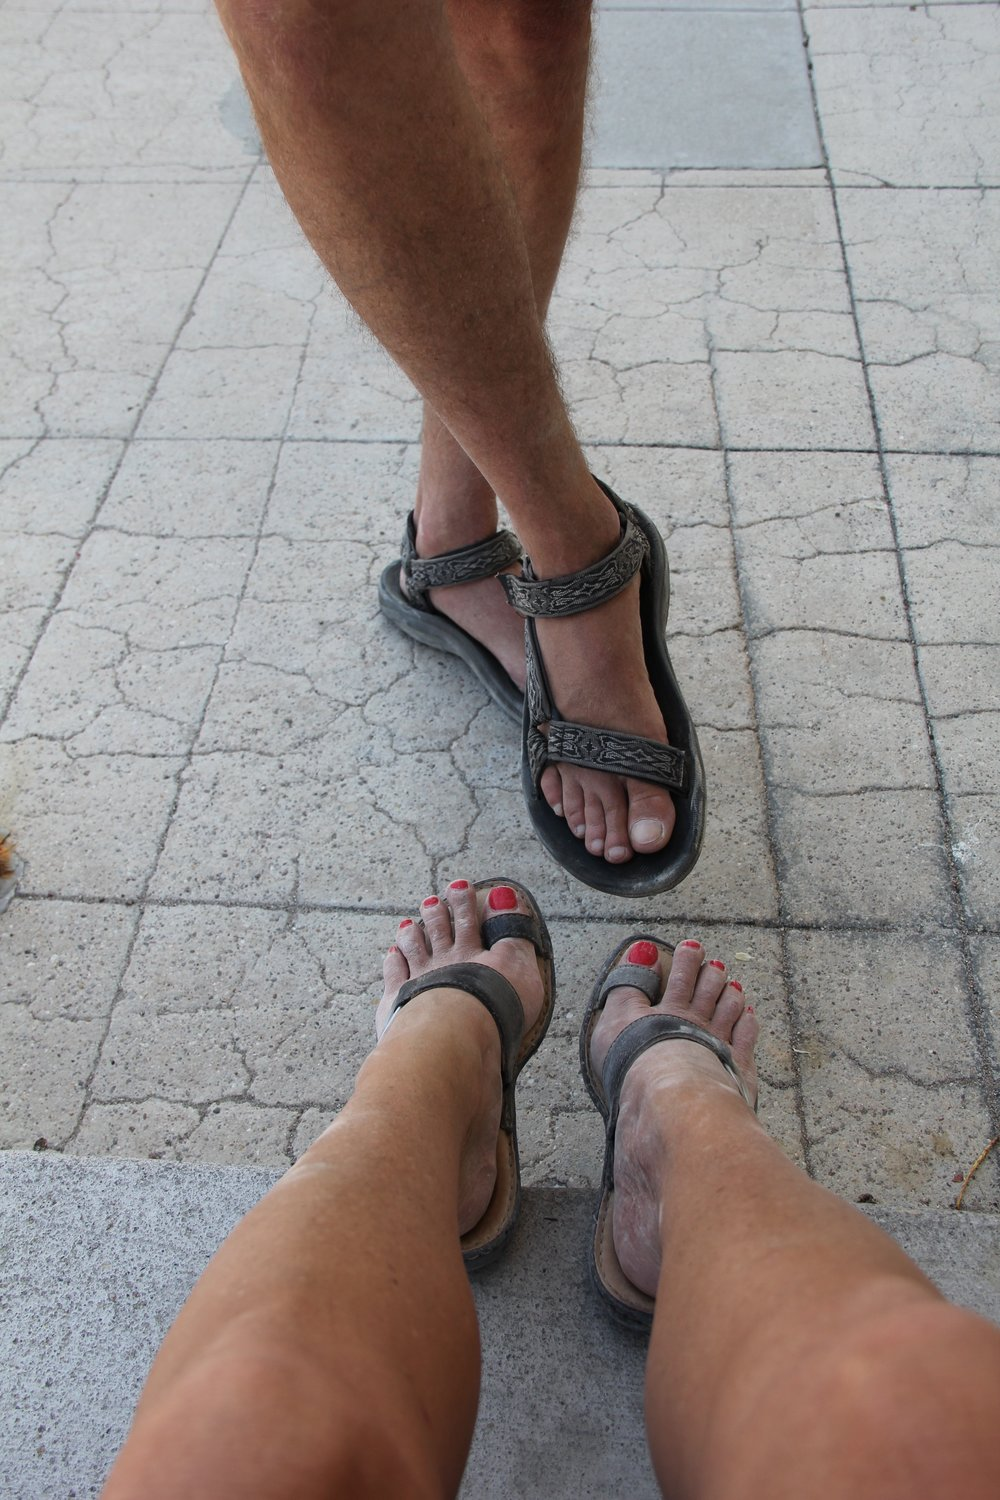 Miners Feet (My Dad Still Can't Believe I Mine In Sandals!